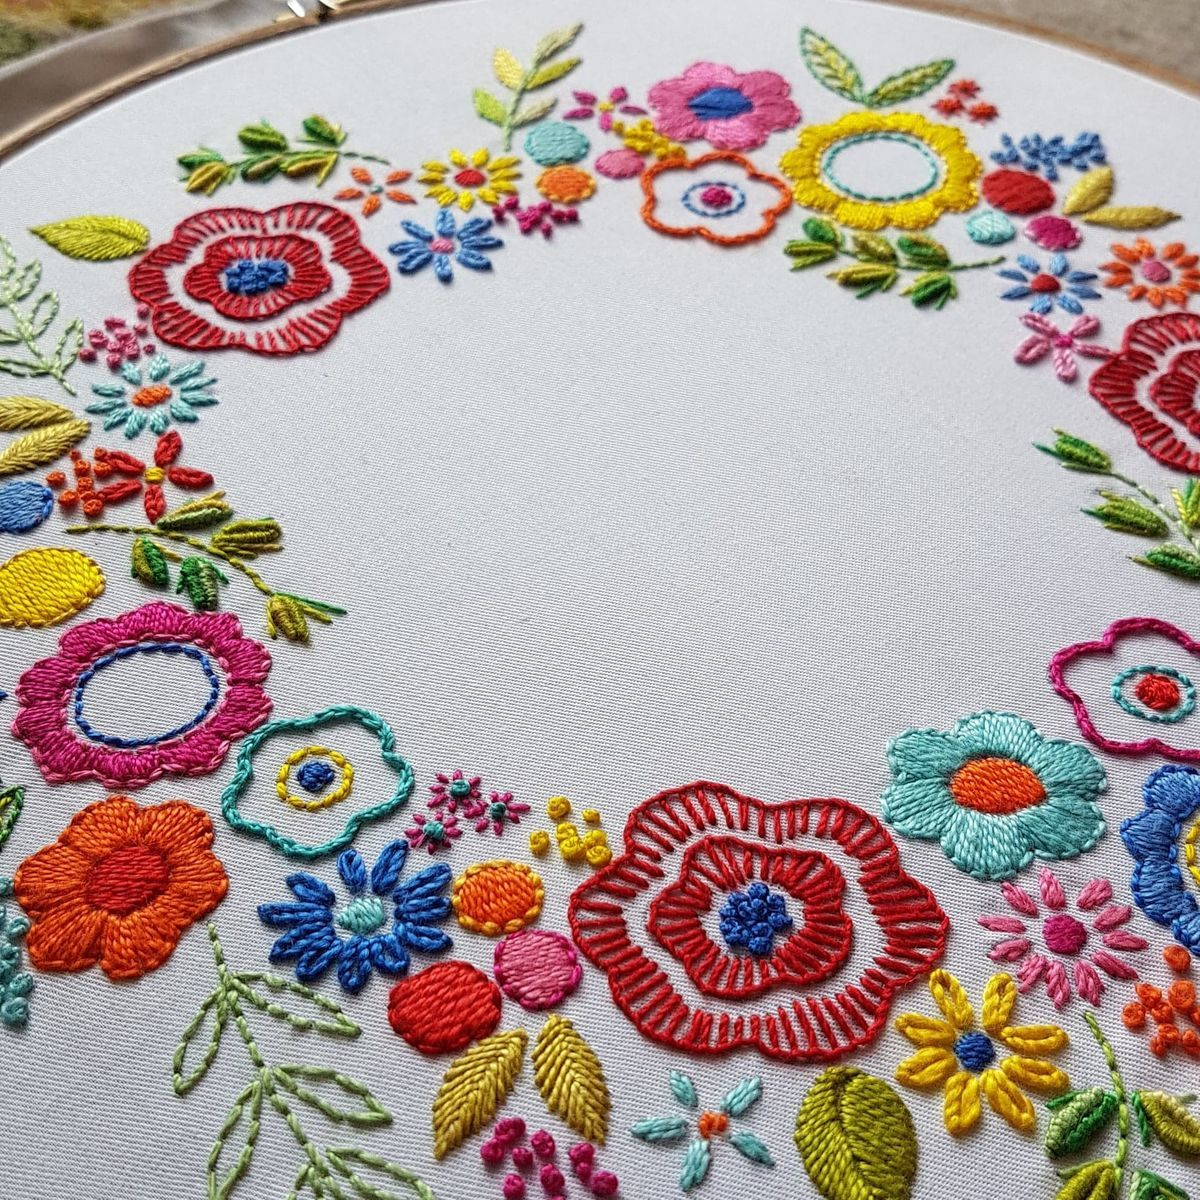 Printed Embroidery Pattern Floral Wreath - product image